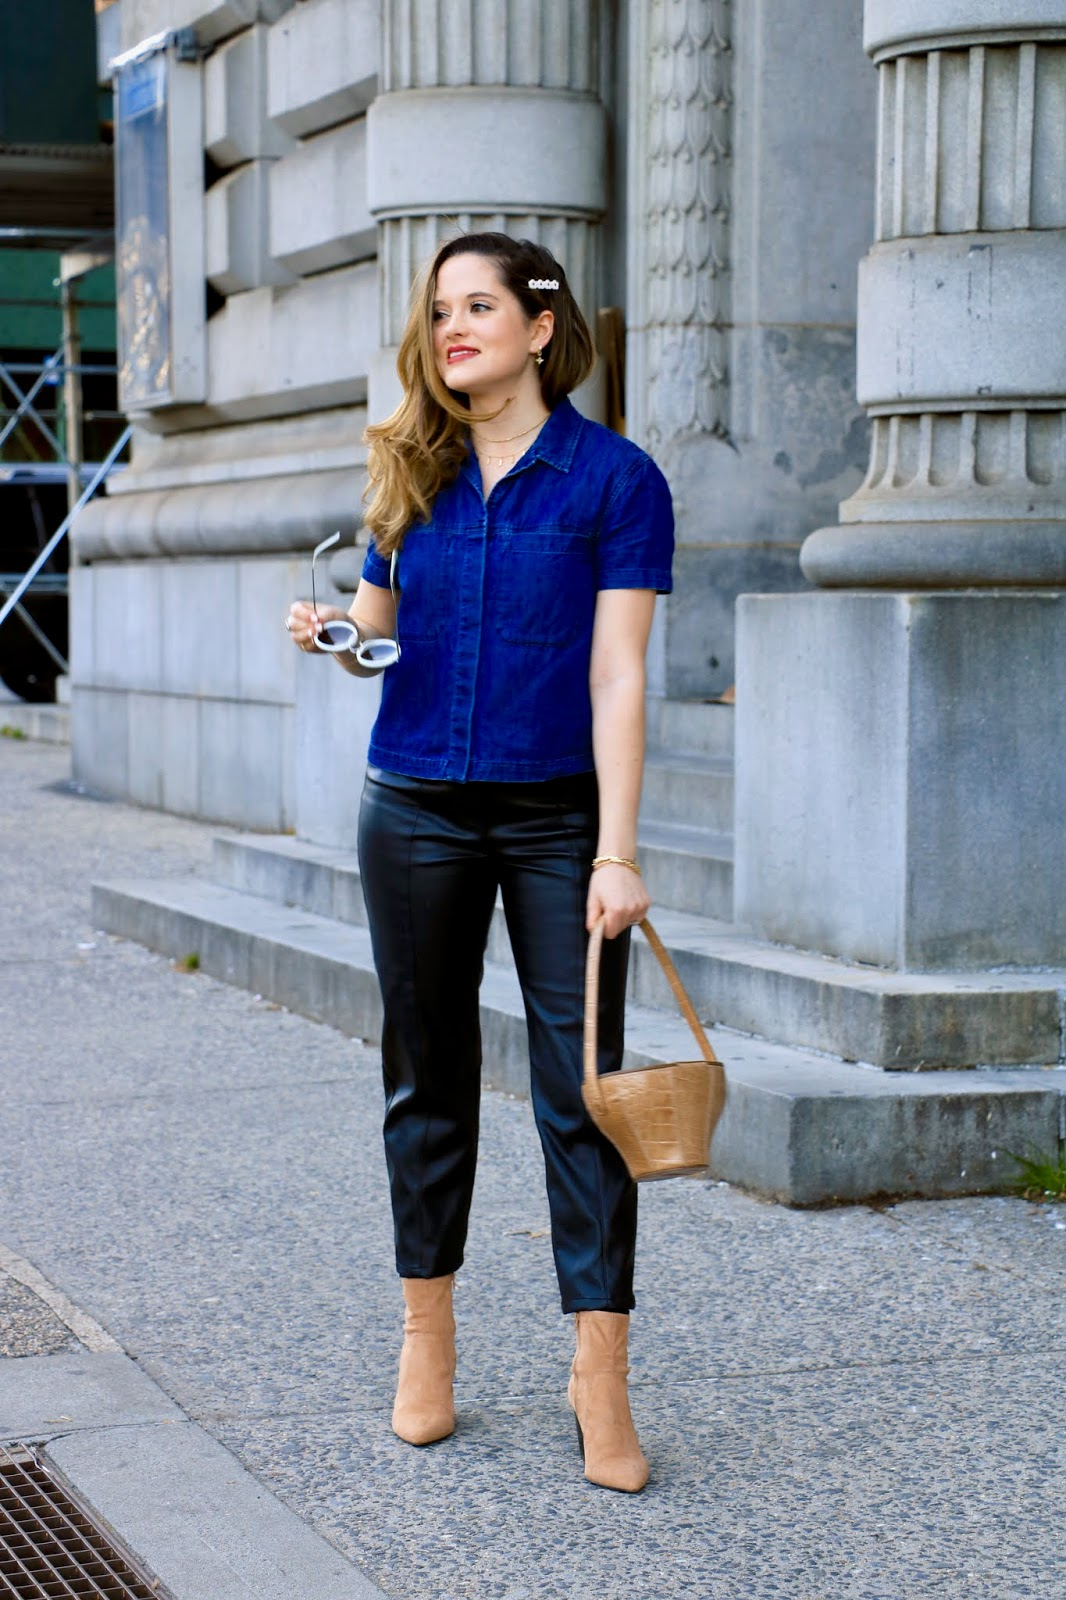 Nyc fashion blogger Kathleen Harper wearing a spring outfit idea for work or weekend.